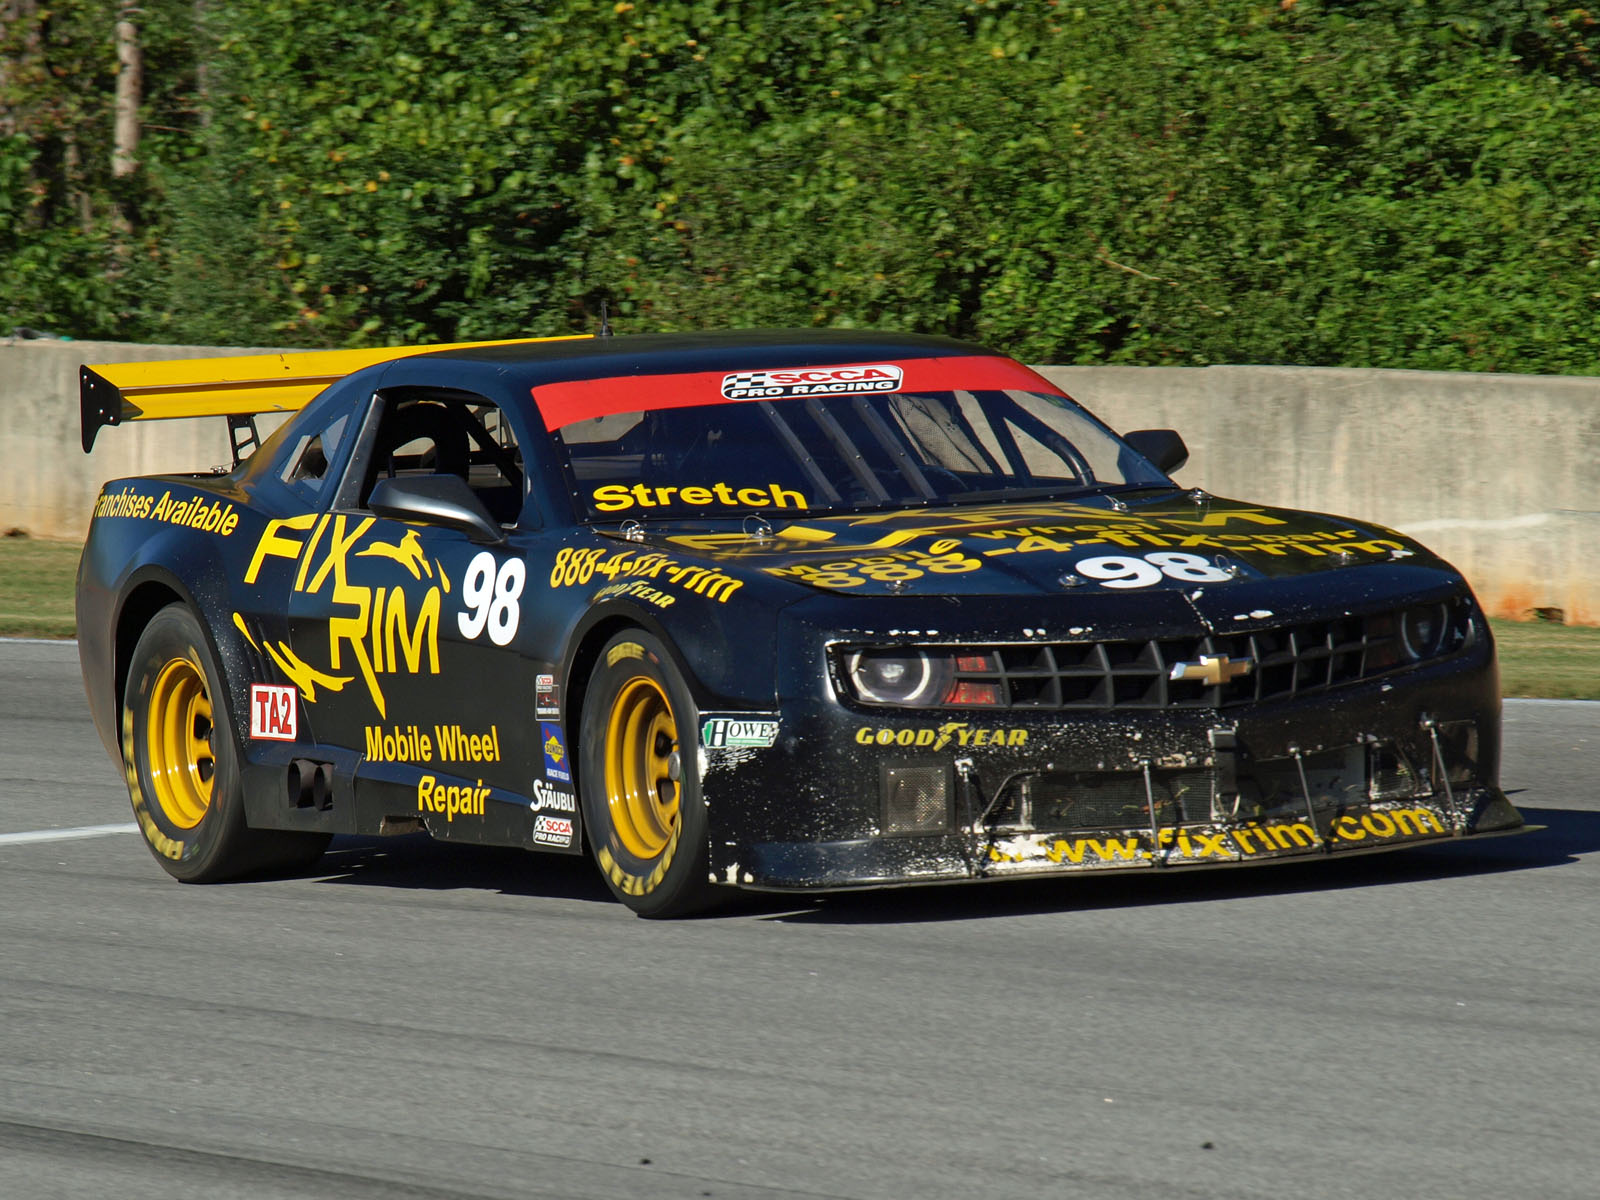 File:PLM 2011 Trans-Am Stretch Camaro.jpg - Wikimedia Commons